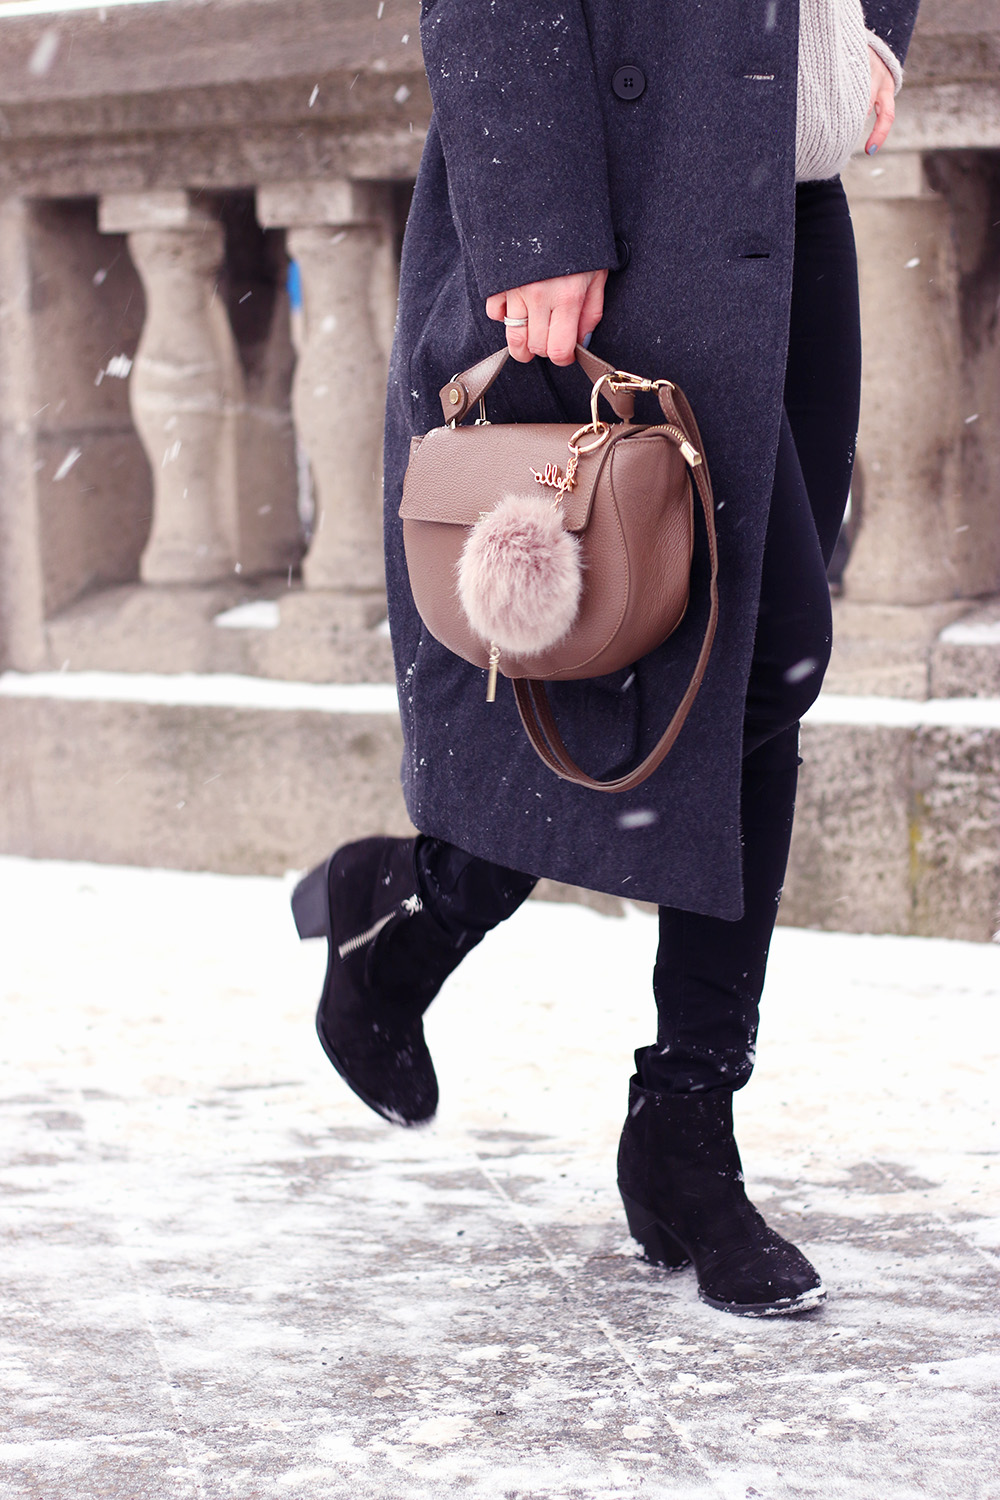 Accessoires, Tasche, Chloe Lookelike, langer Wintermantel, Matel stylen, Winter Outfit, Look, Fashion Week Berlin 2017, Modeblog, Influencer, Advance Your Style